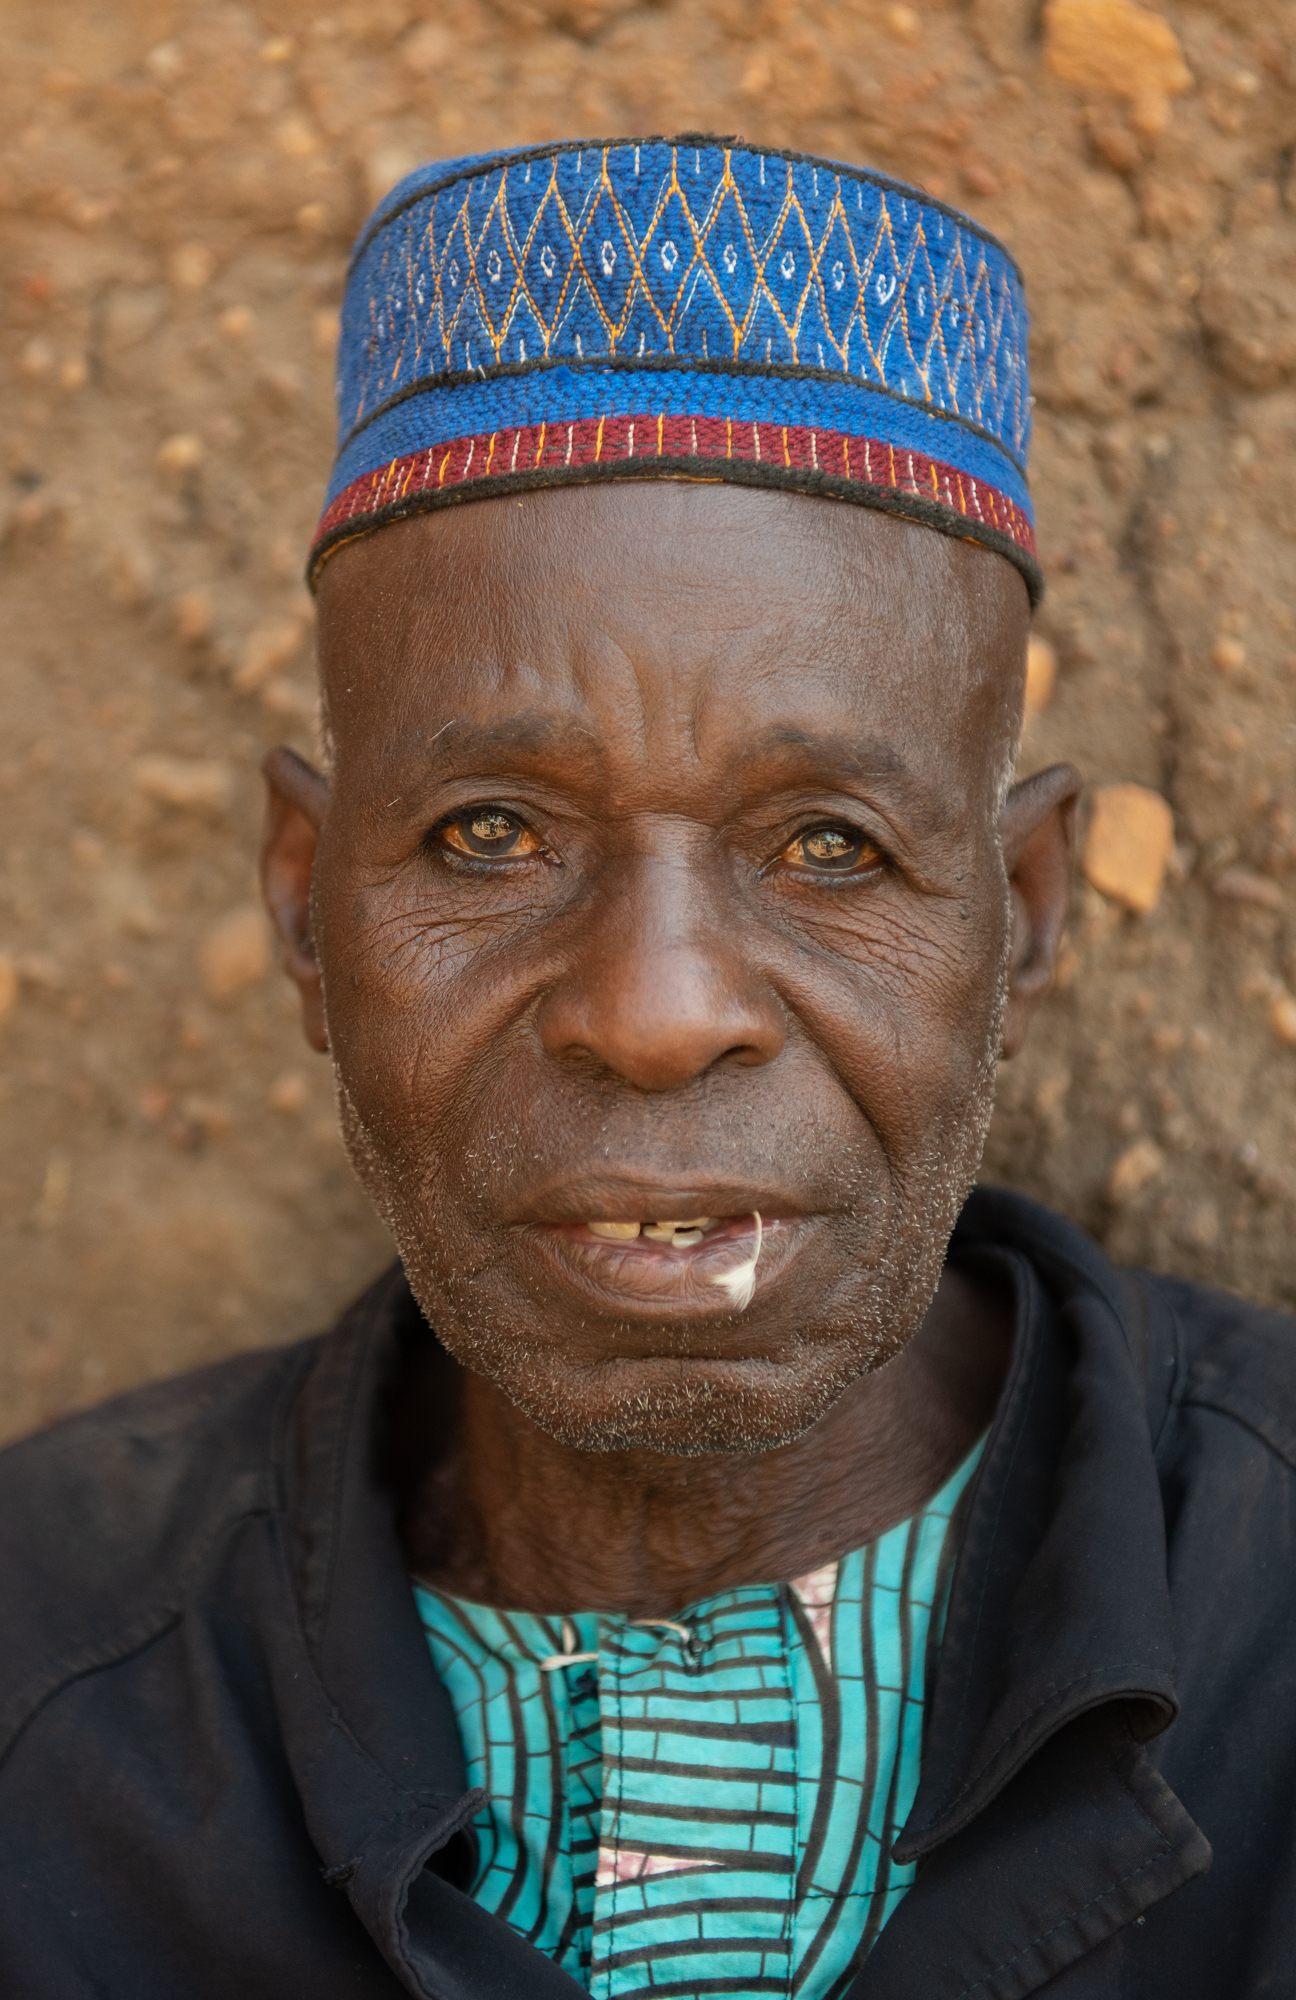 Village Chief, Benin